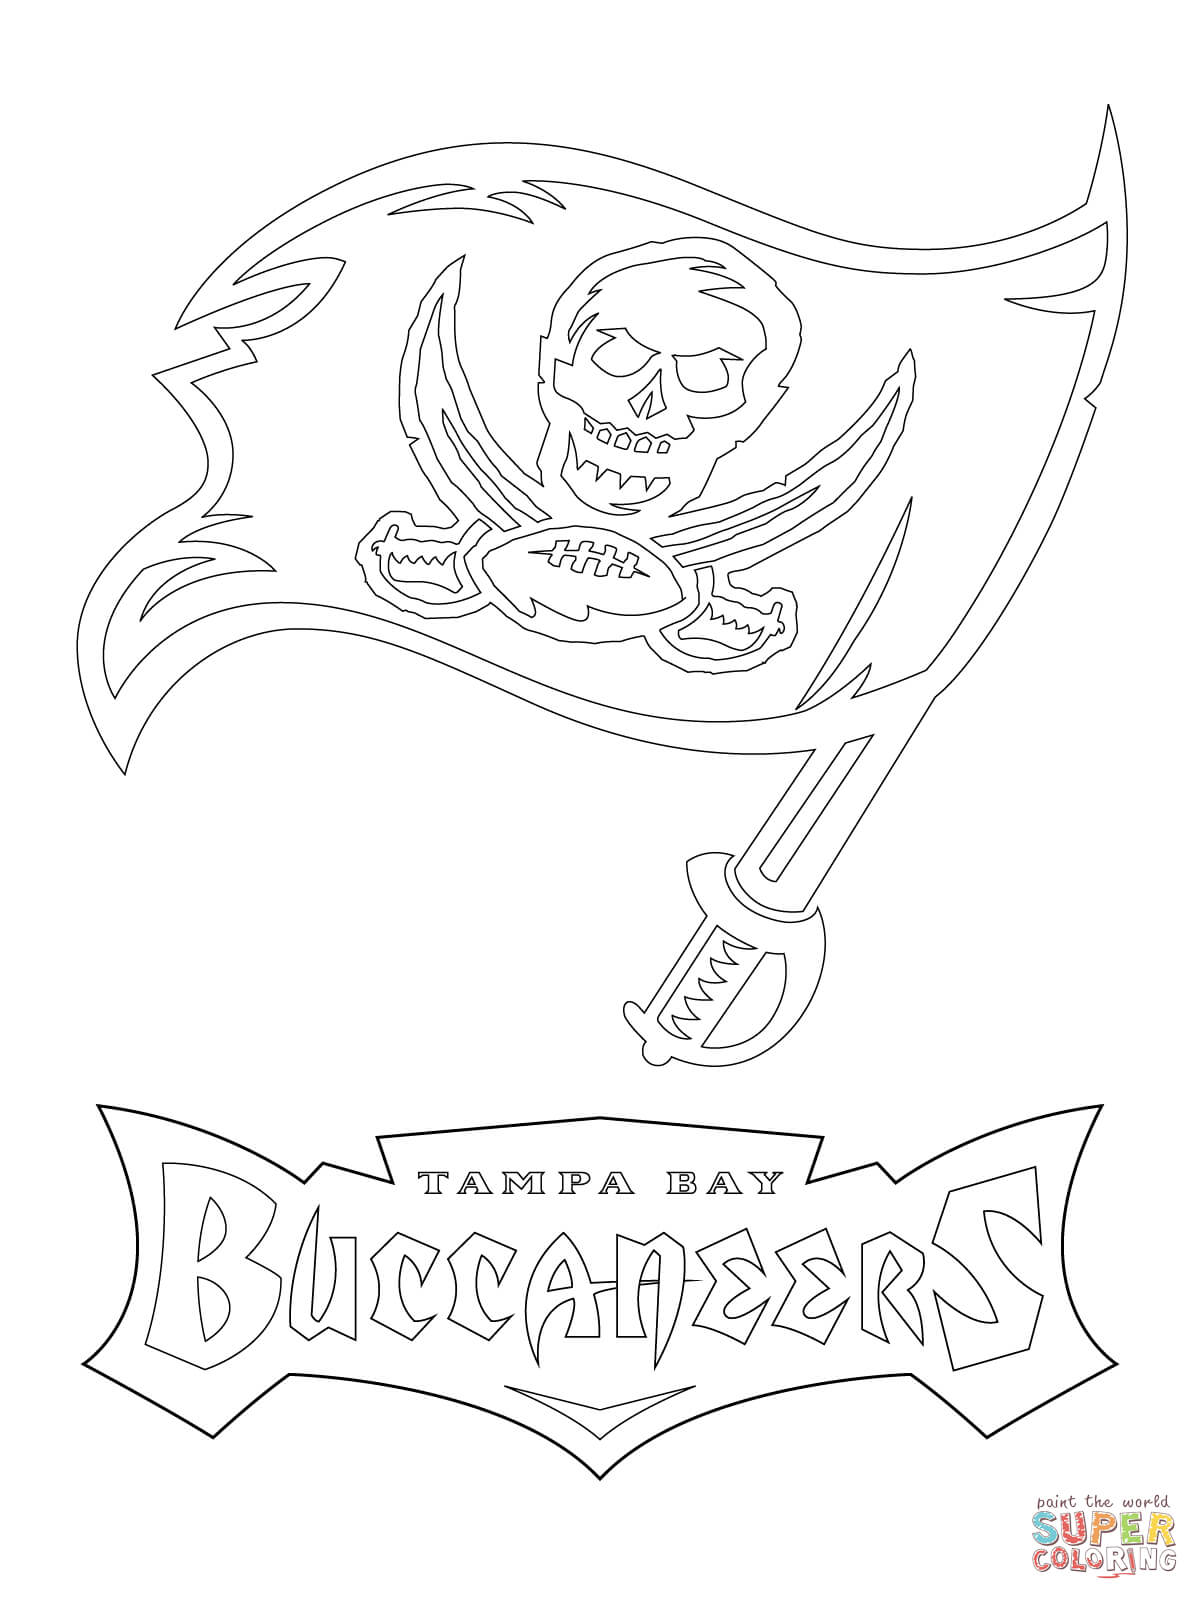 Free Nfl Coloring Pages At Getdrawings Com Free For Personal Use